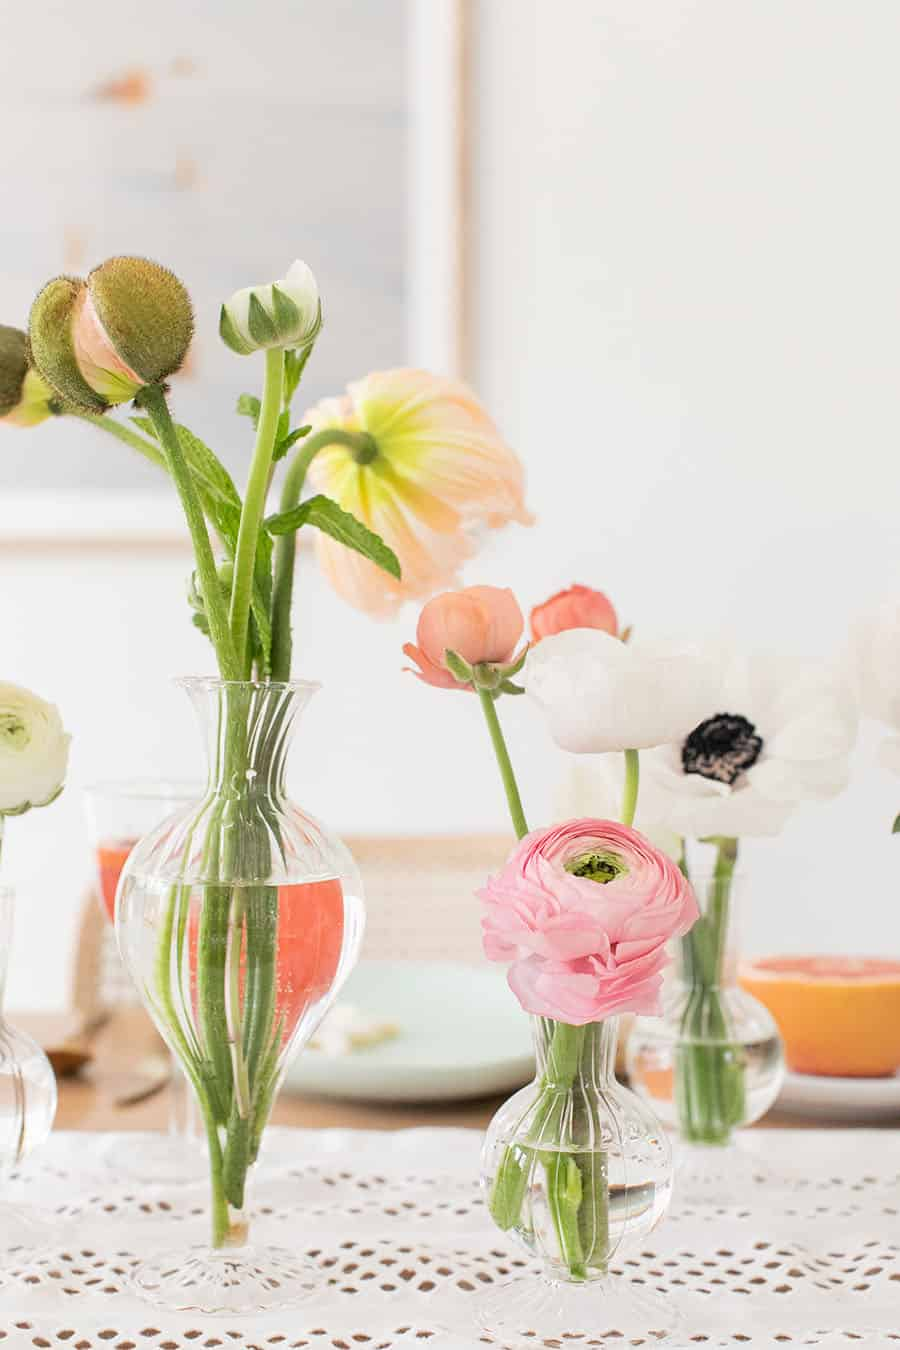 Flowers in a vase.